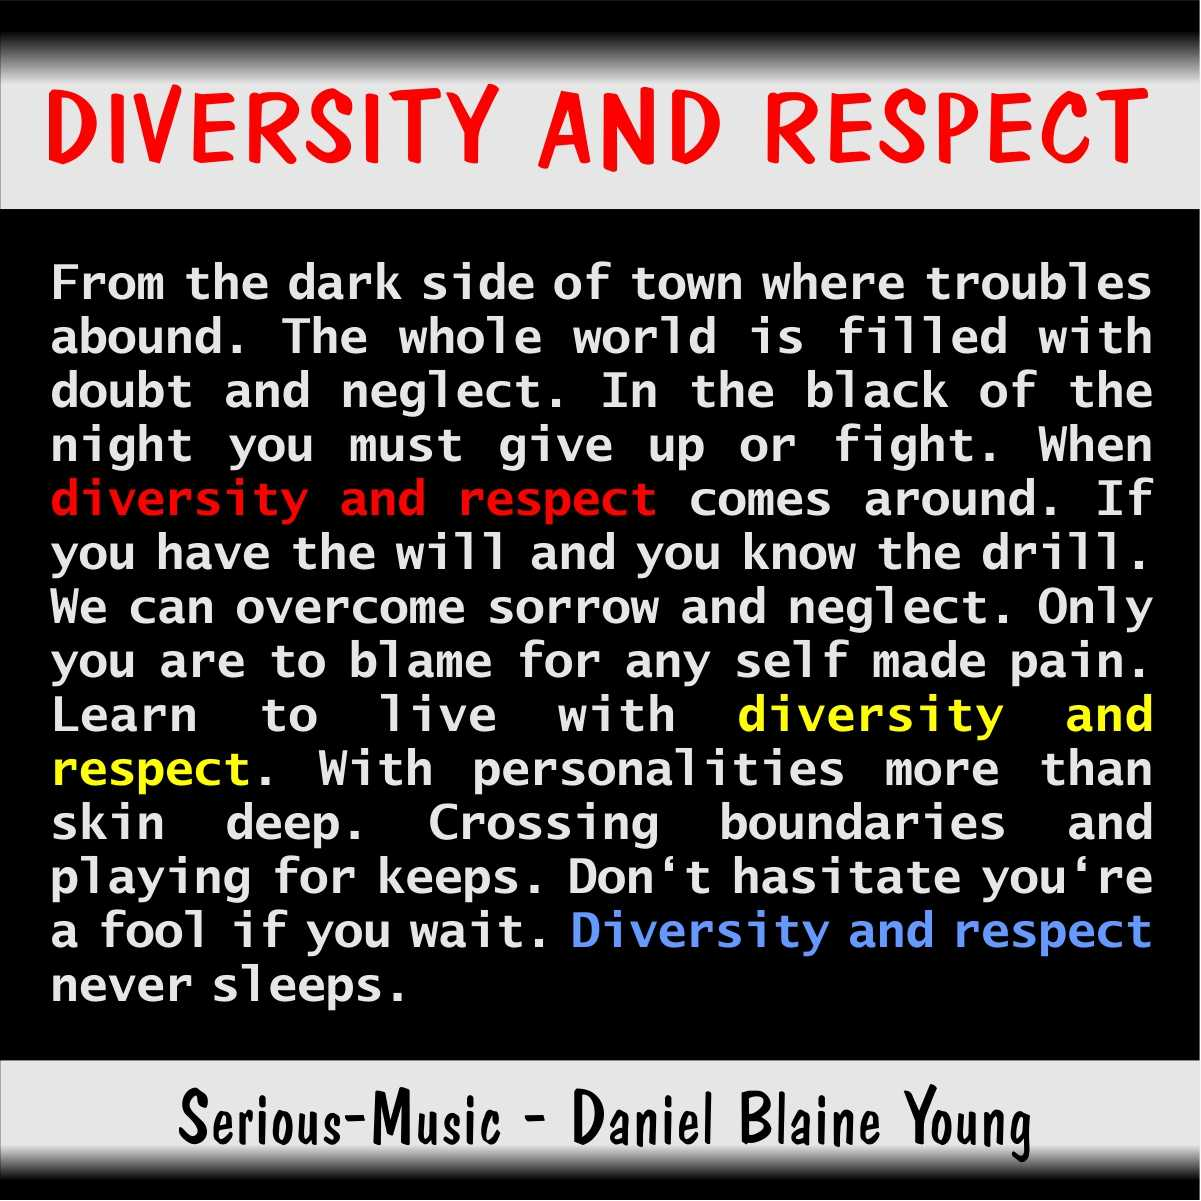 Diversity And Respect feat. Danlb Young - Album CHASING AFTER DREAMS